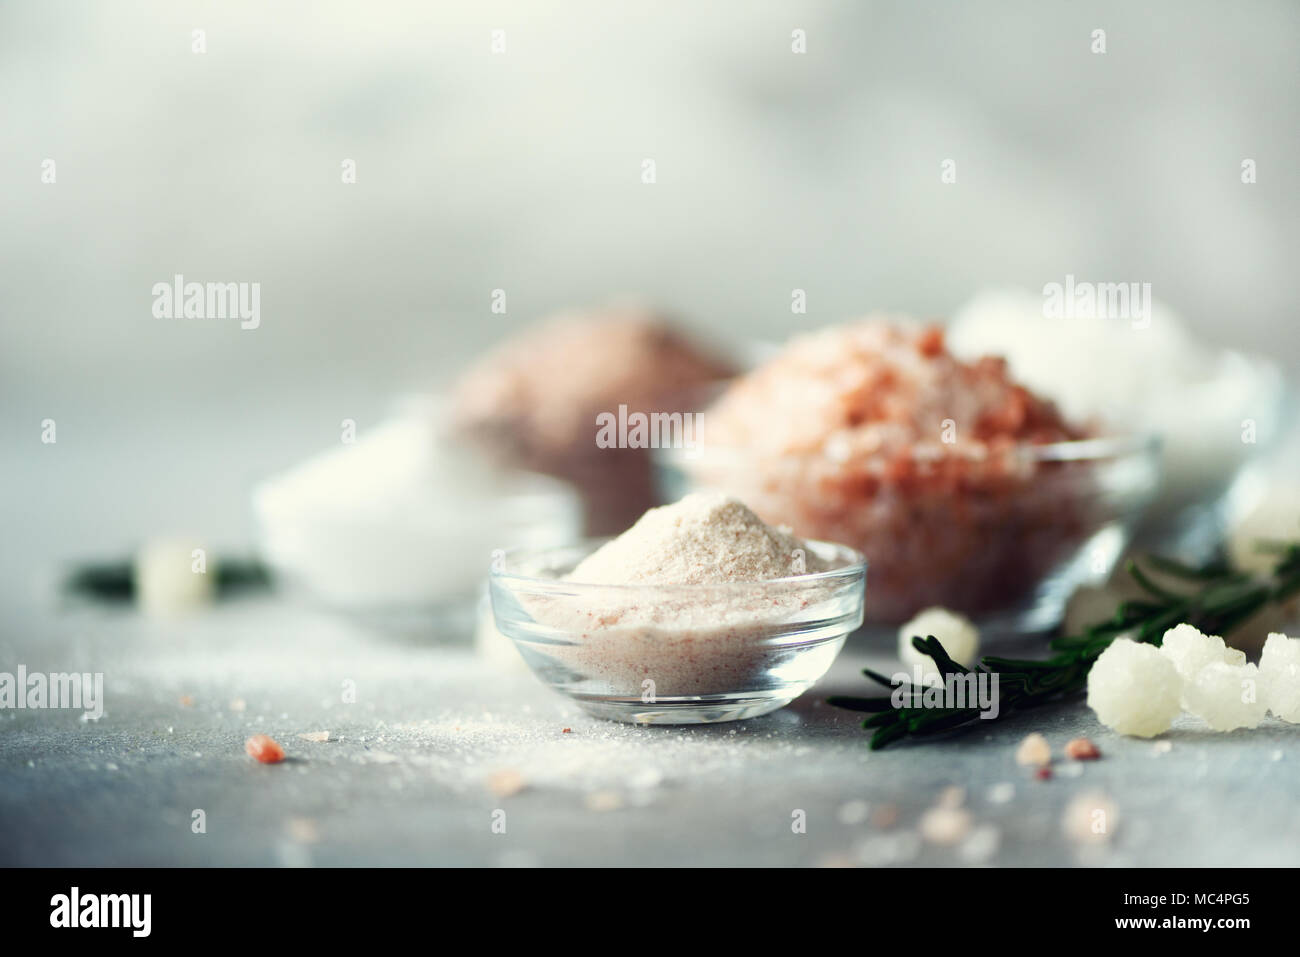 Mix of different salt types on grey concrete background. Sea salts, black and pink Himalayan salt crystals, powder, rosemary. Salt crystal balls from Dead sea. Copy space - Stock Image